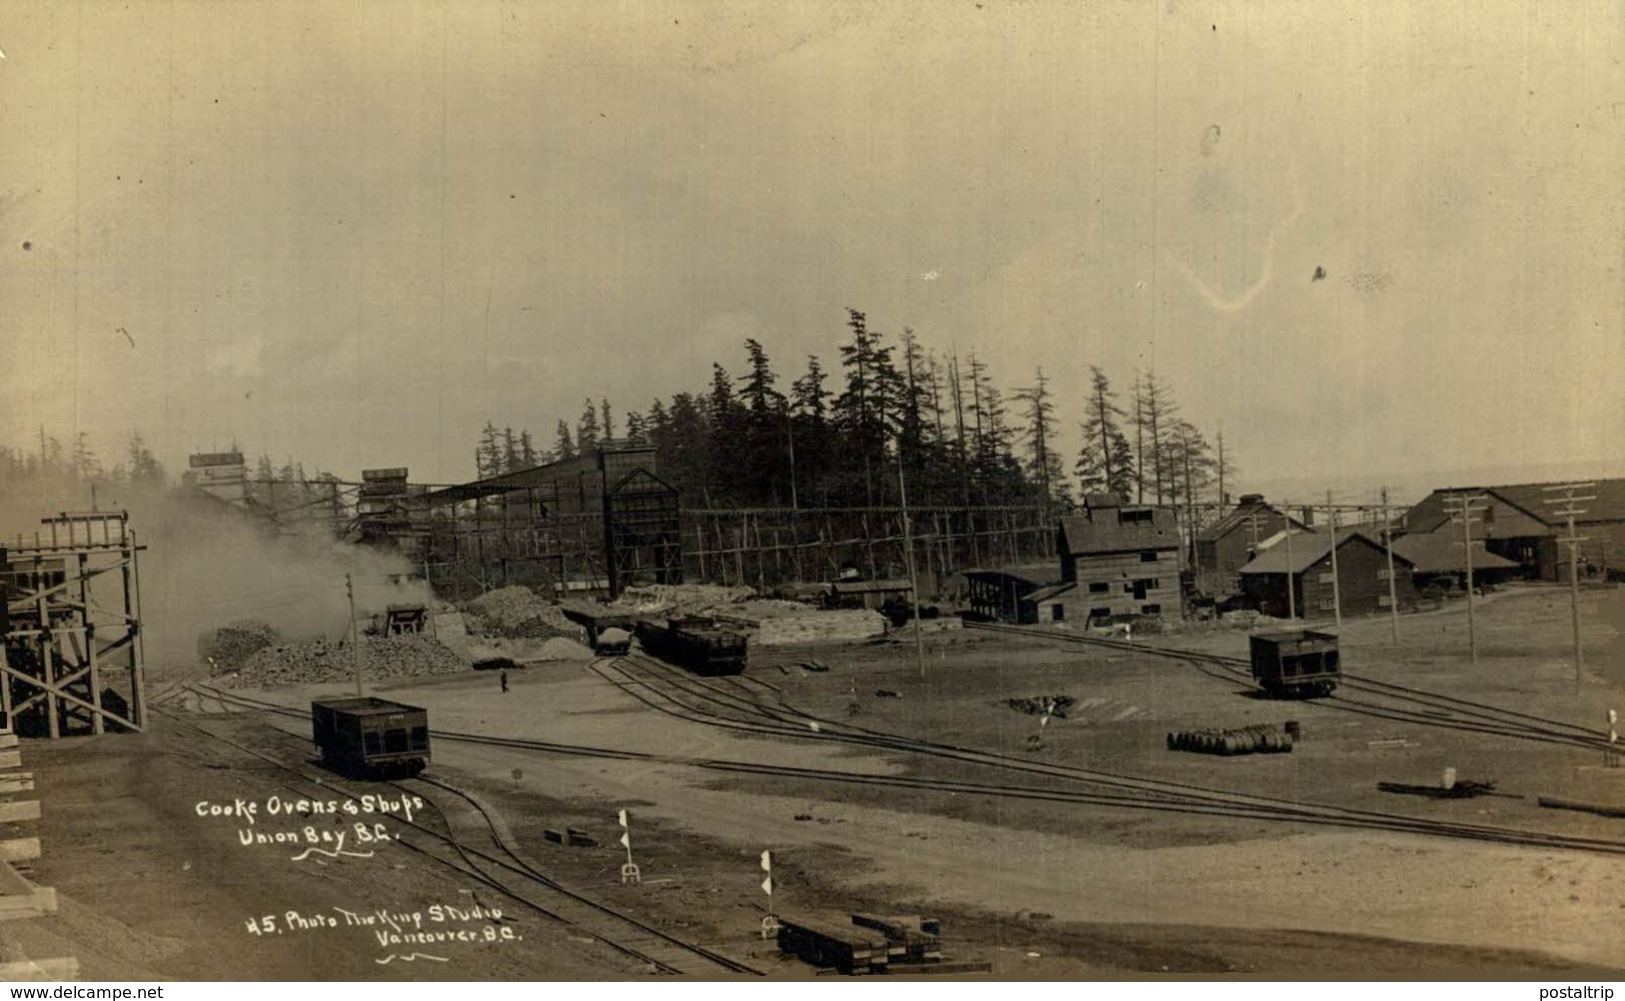 RPPC COOKE OVENS SHOPS  UNION BAY BC VANCOUVER CANADA - Mineral